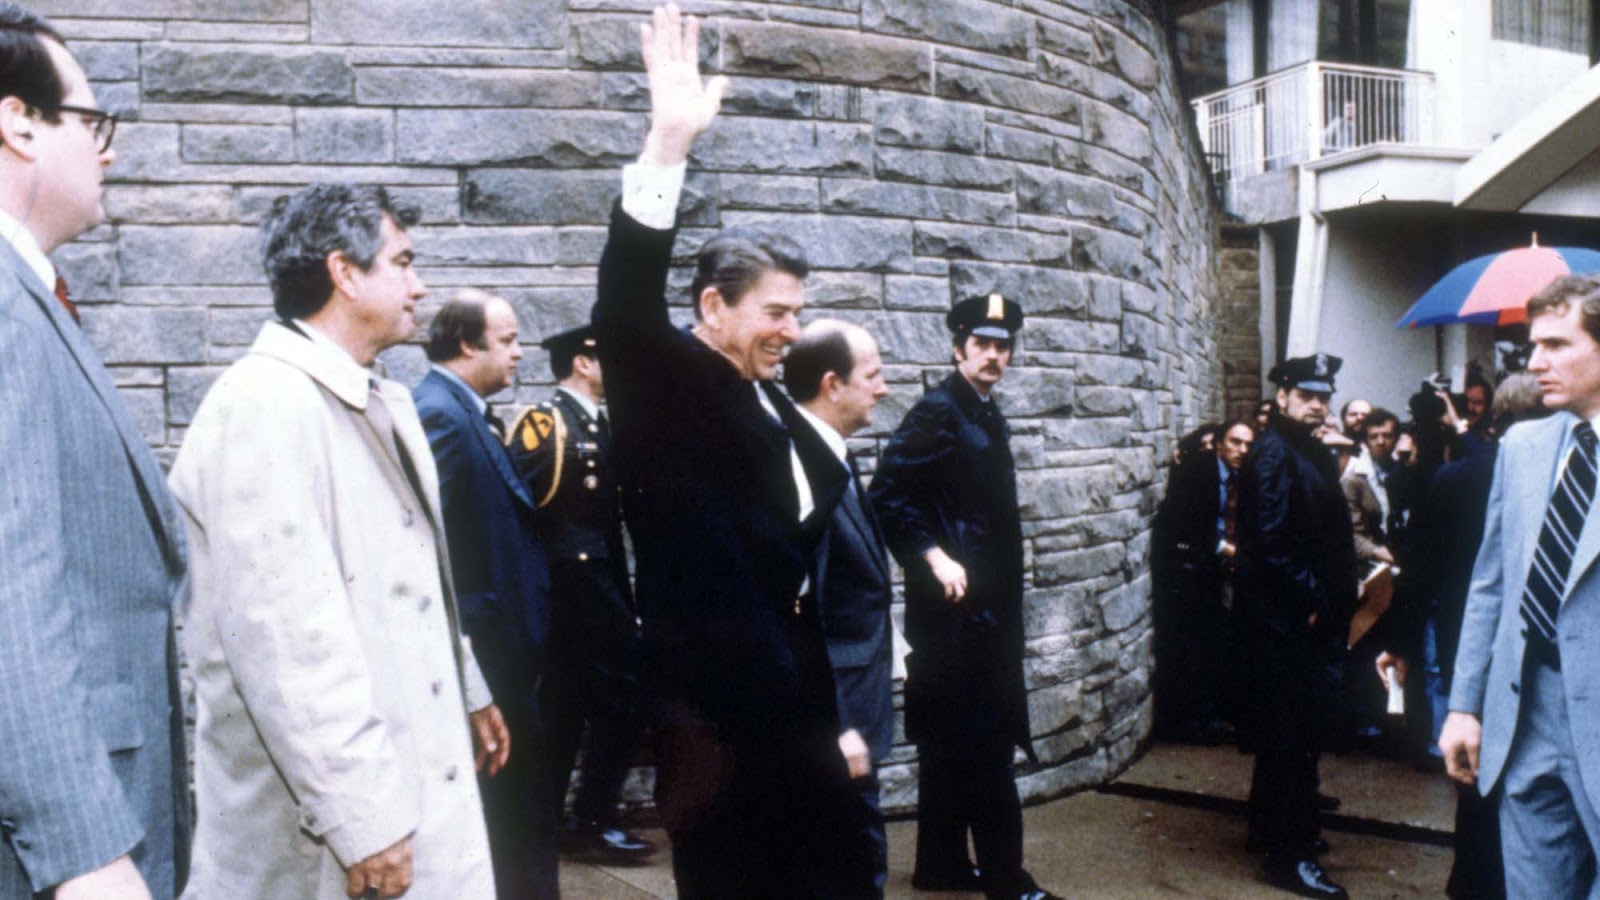 As Reagan exited the hotel toward his waiting limousine, Hinckley waited within the crowd of admirers.